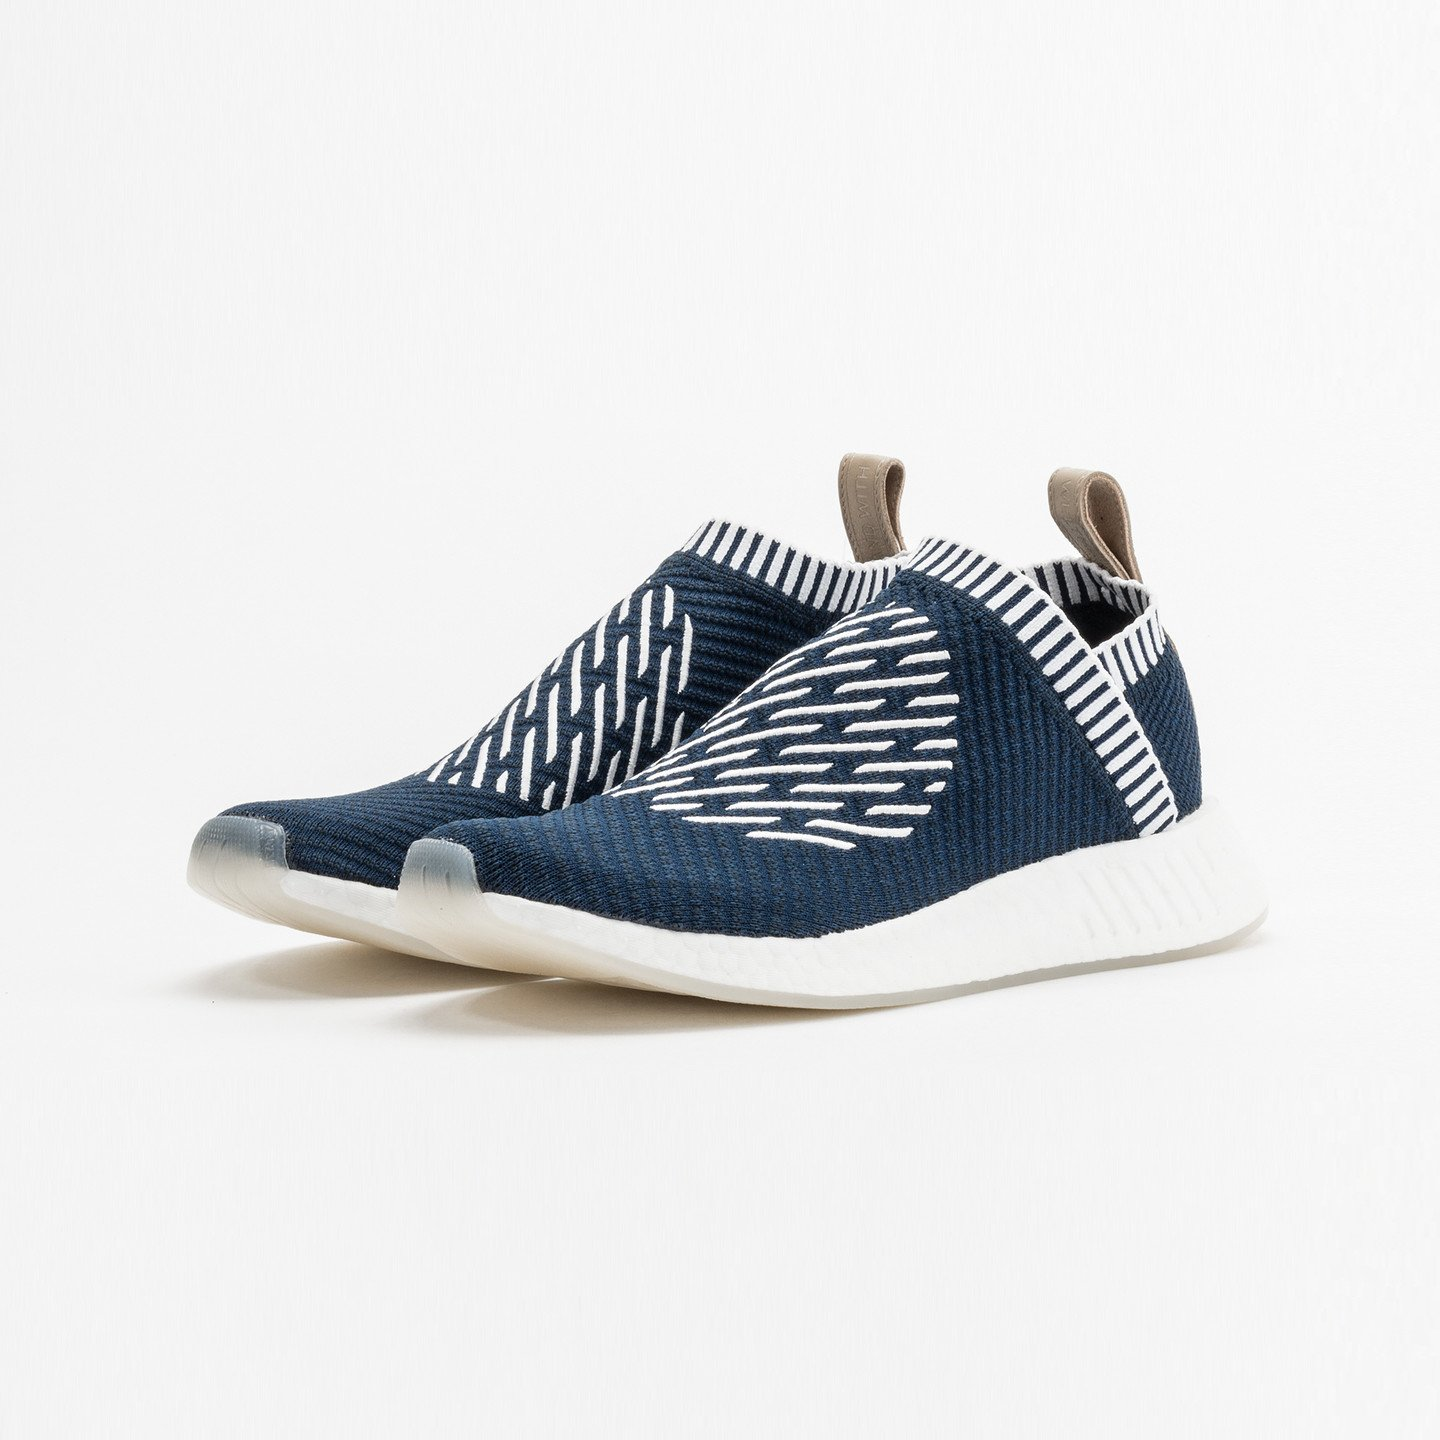 Adidas NMD CS2 PK Collegiate Navy / White BA7189-44.66